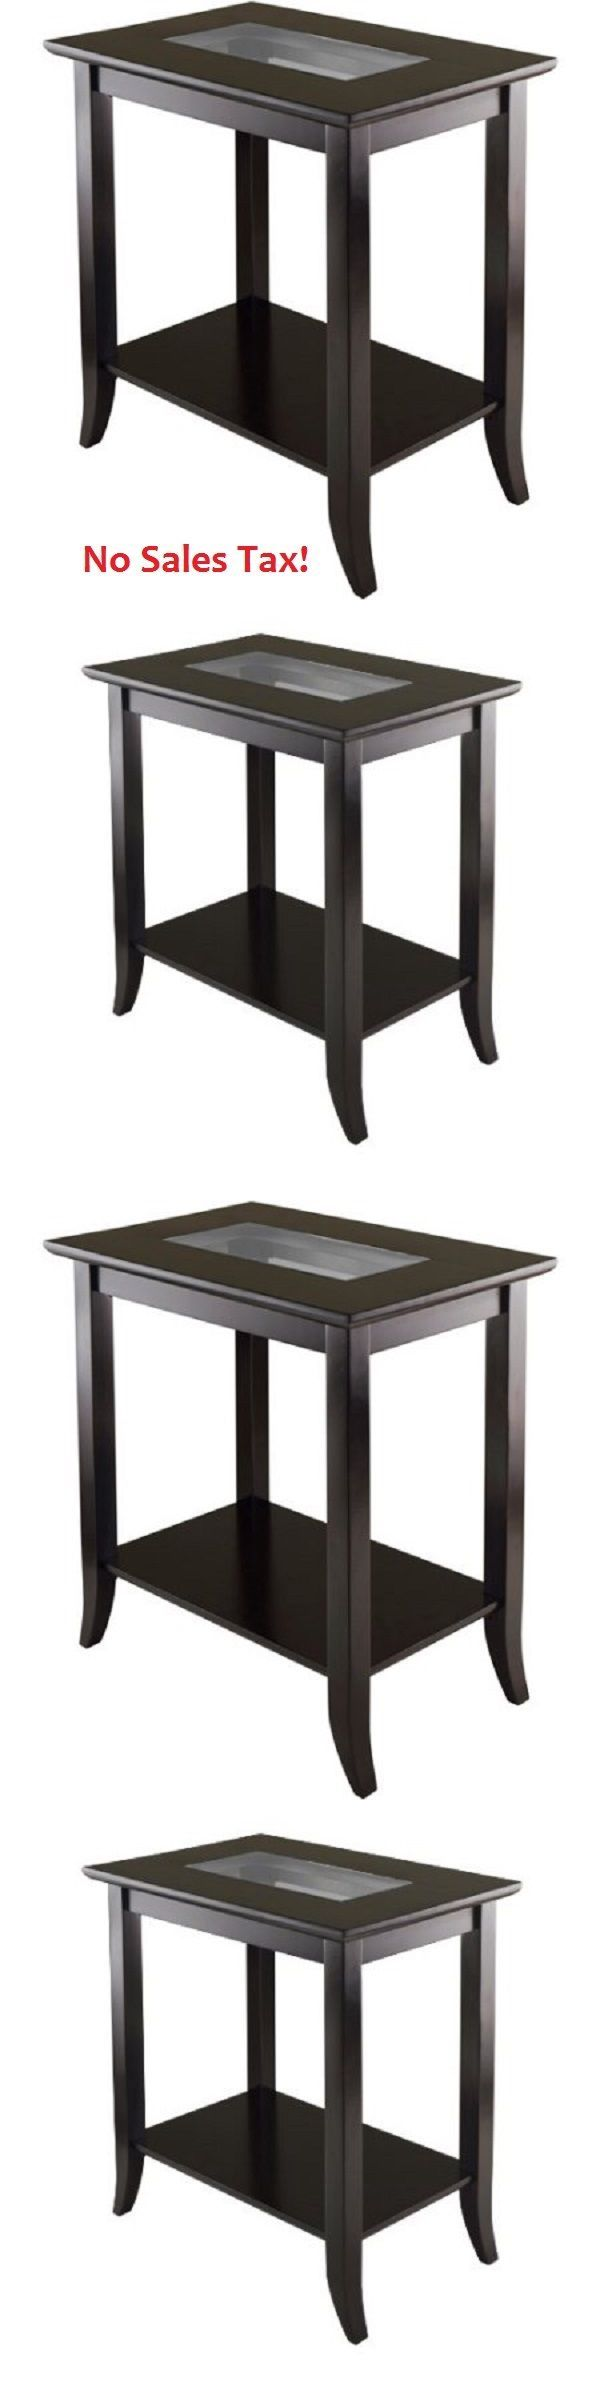 Tables 38204 Square End Table With Glass Top Side Furniture Espresso Buy It